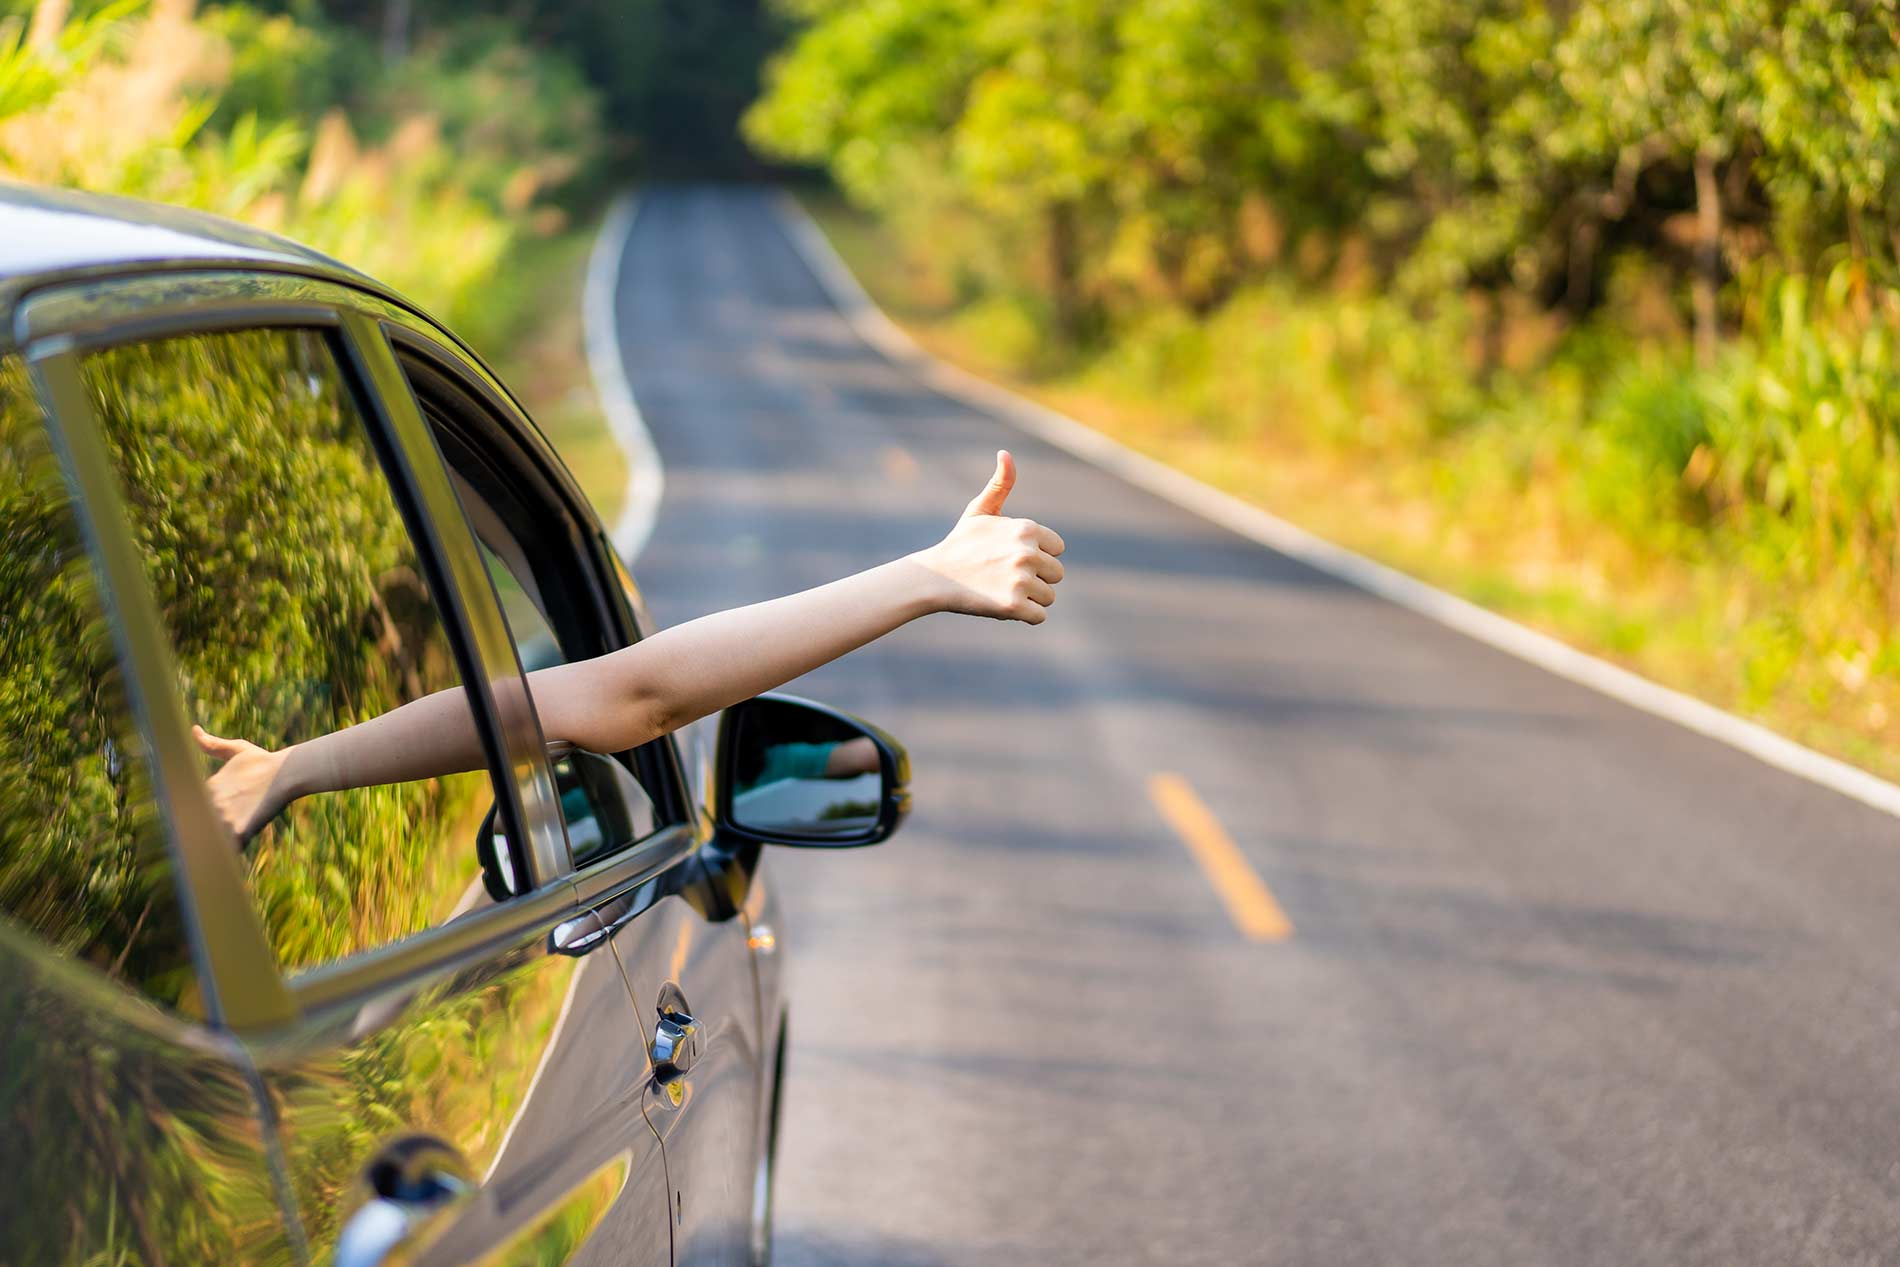 Learn to drive a car without the fear of accident